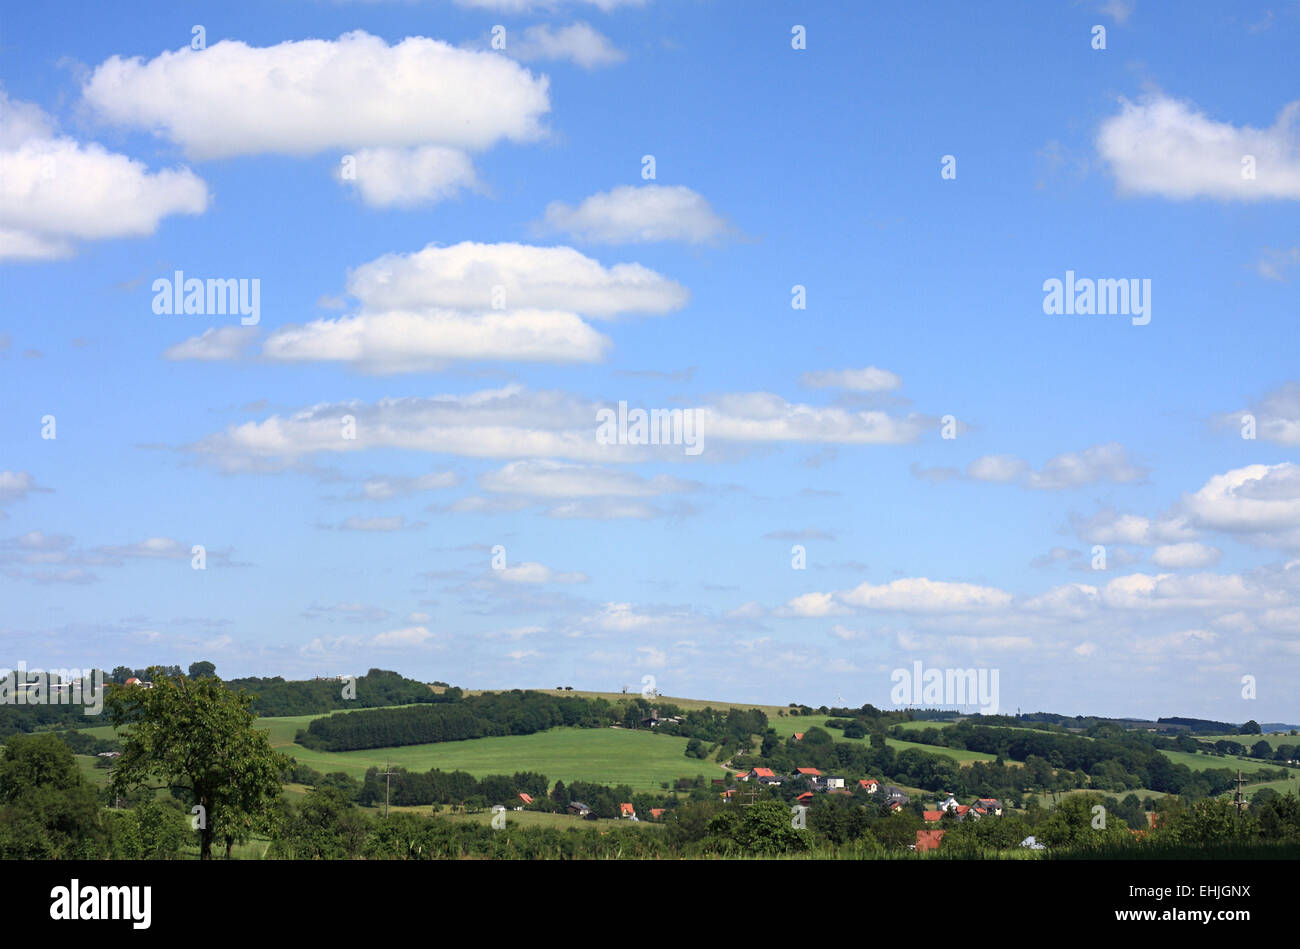 Sparsely populated - Stock Image